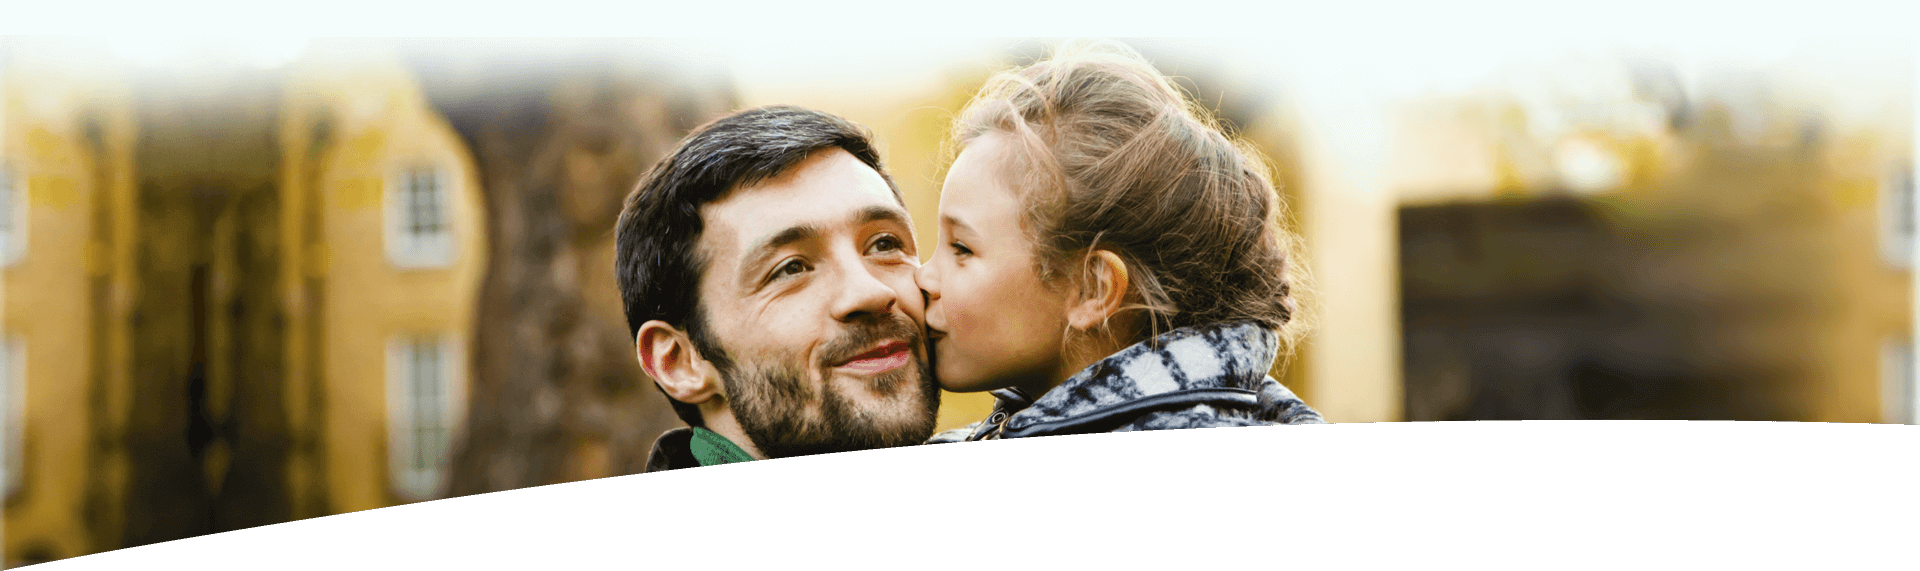 Dentist Carrollton - A Father and his Daughter